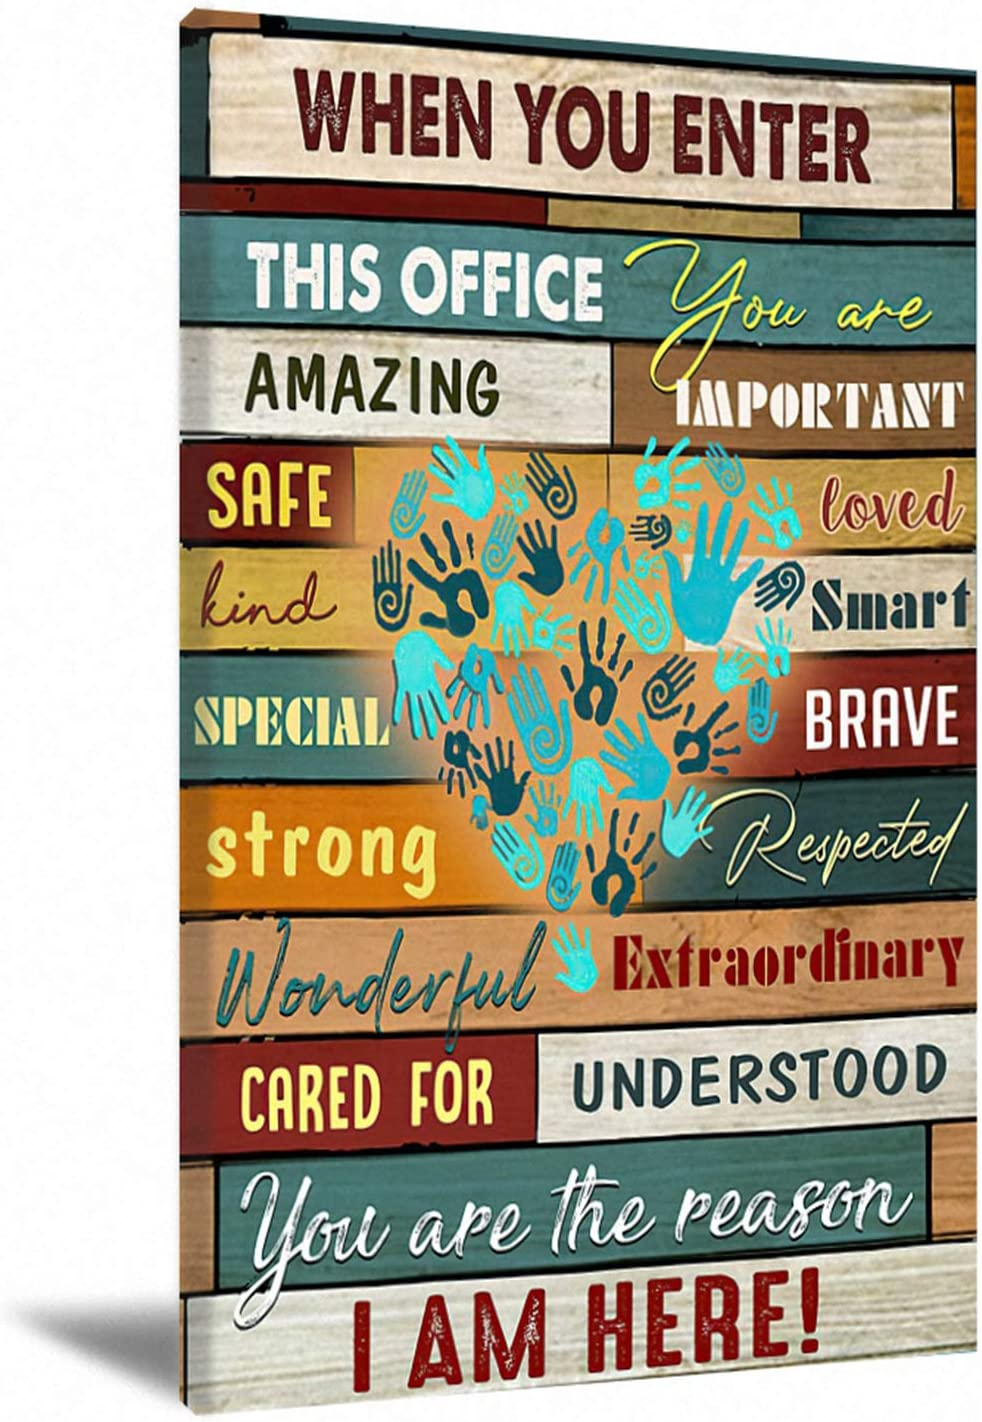 When You Enter Office Inspirational Wall Art Canvas For Office Motivational Quotes Wall Decor In This Office Canvas Wall Art For Office Quotes Canvas Art Wall Decor Office 16X24Inch Frameless